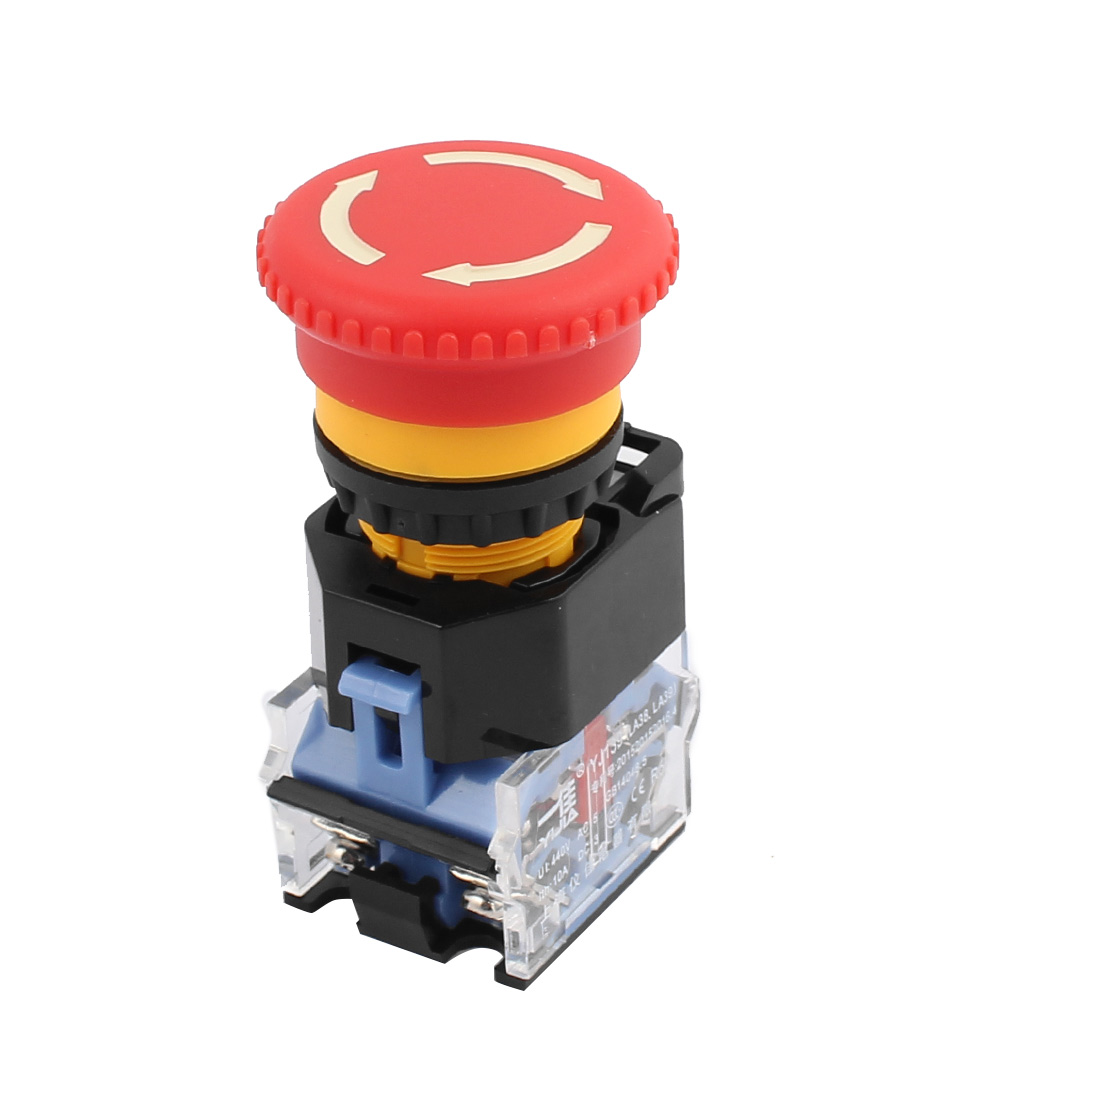 Ui 440V Ith 10A Red Mushroom Head Momentary DPST 1NO+1NC Pushbutton Switch